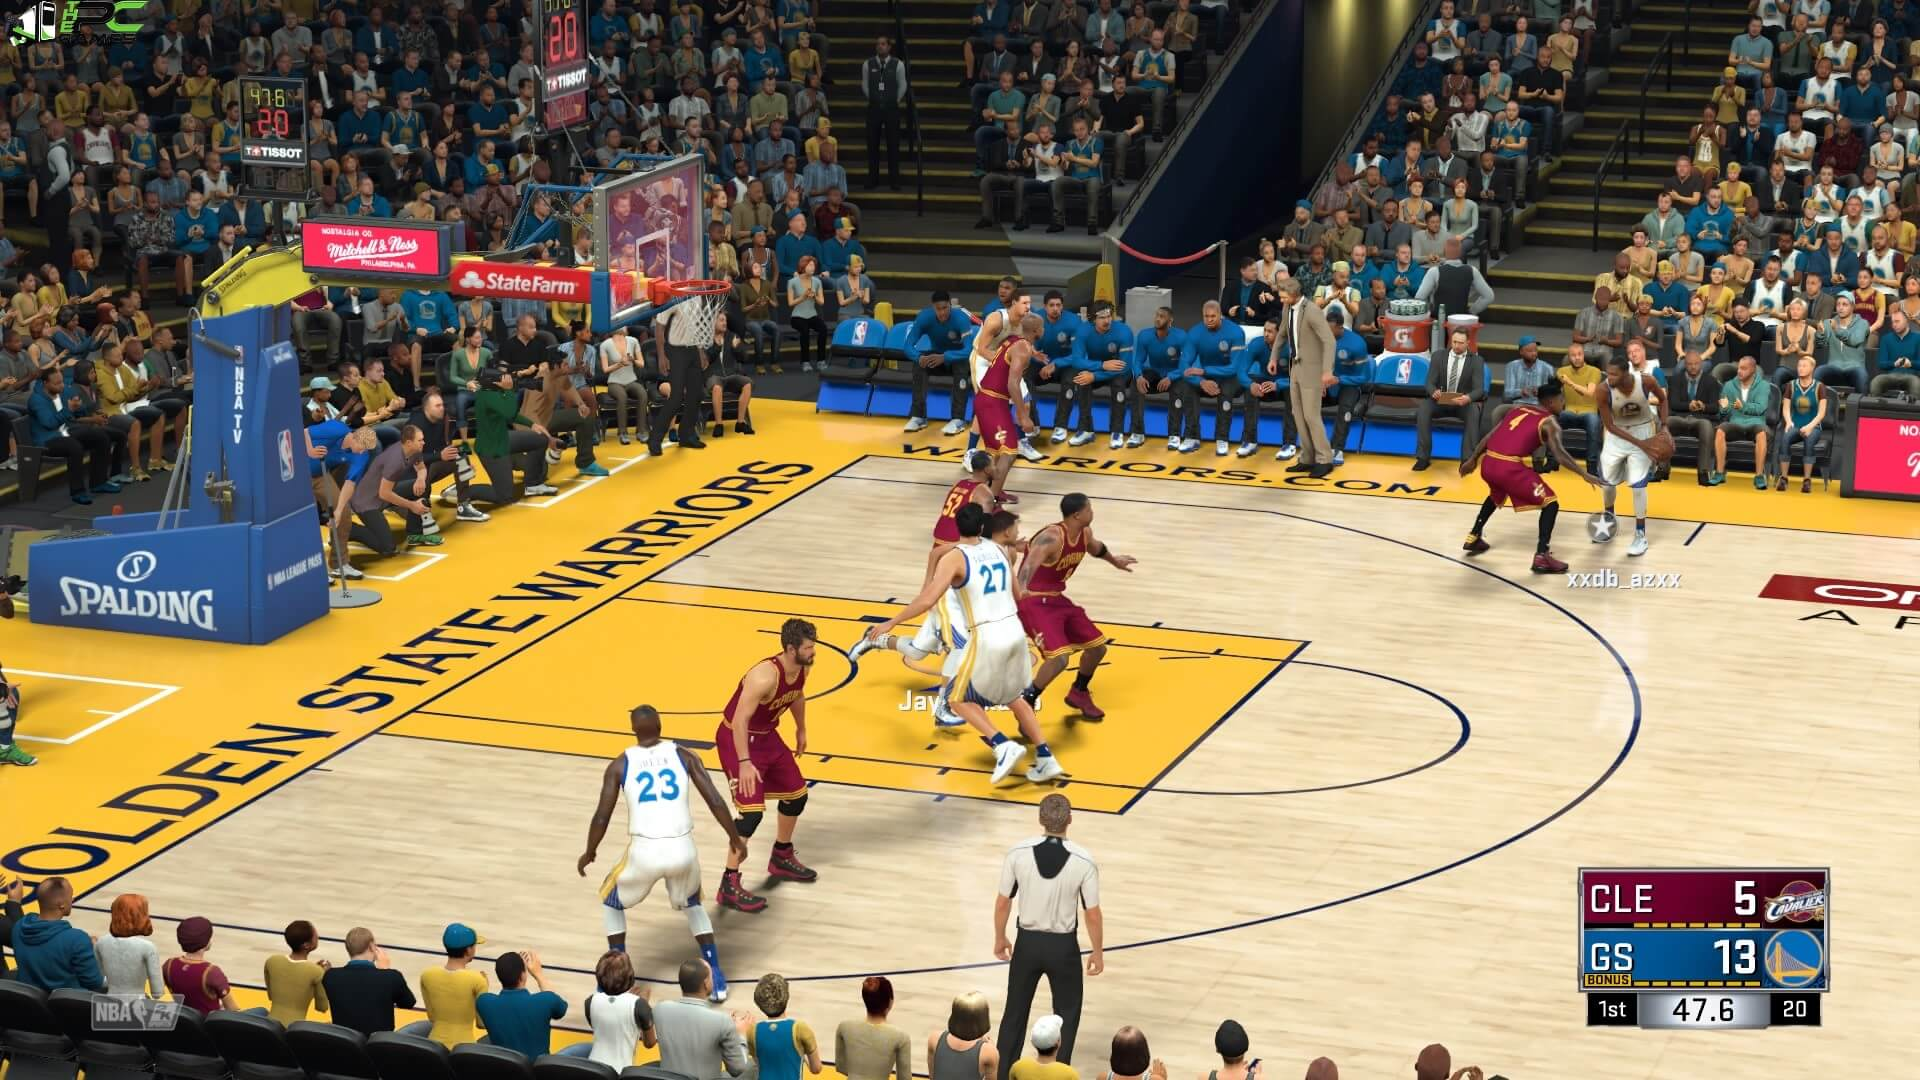 nba 2k17 download for free pc